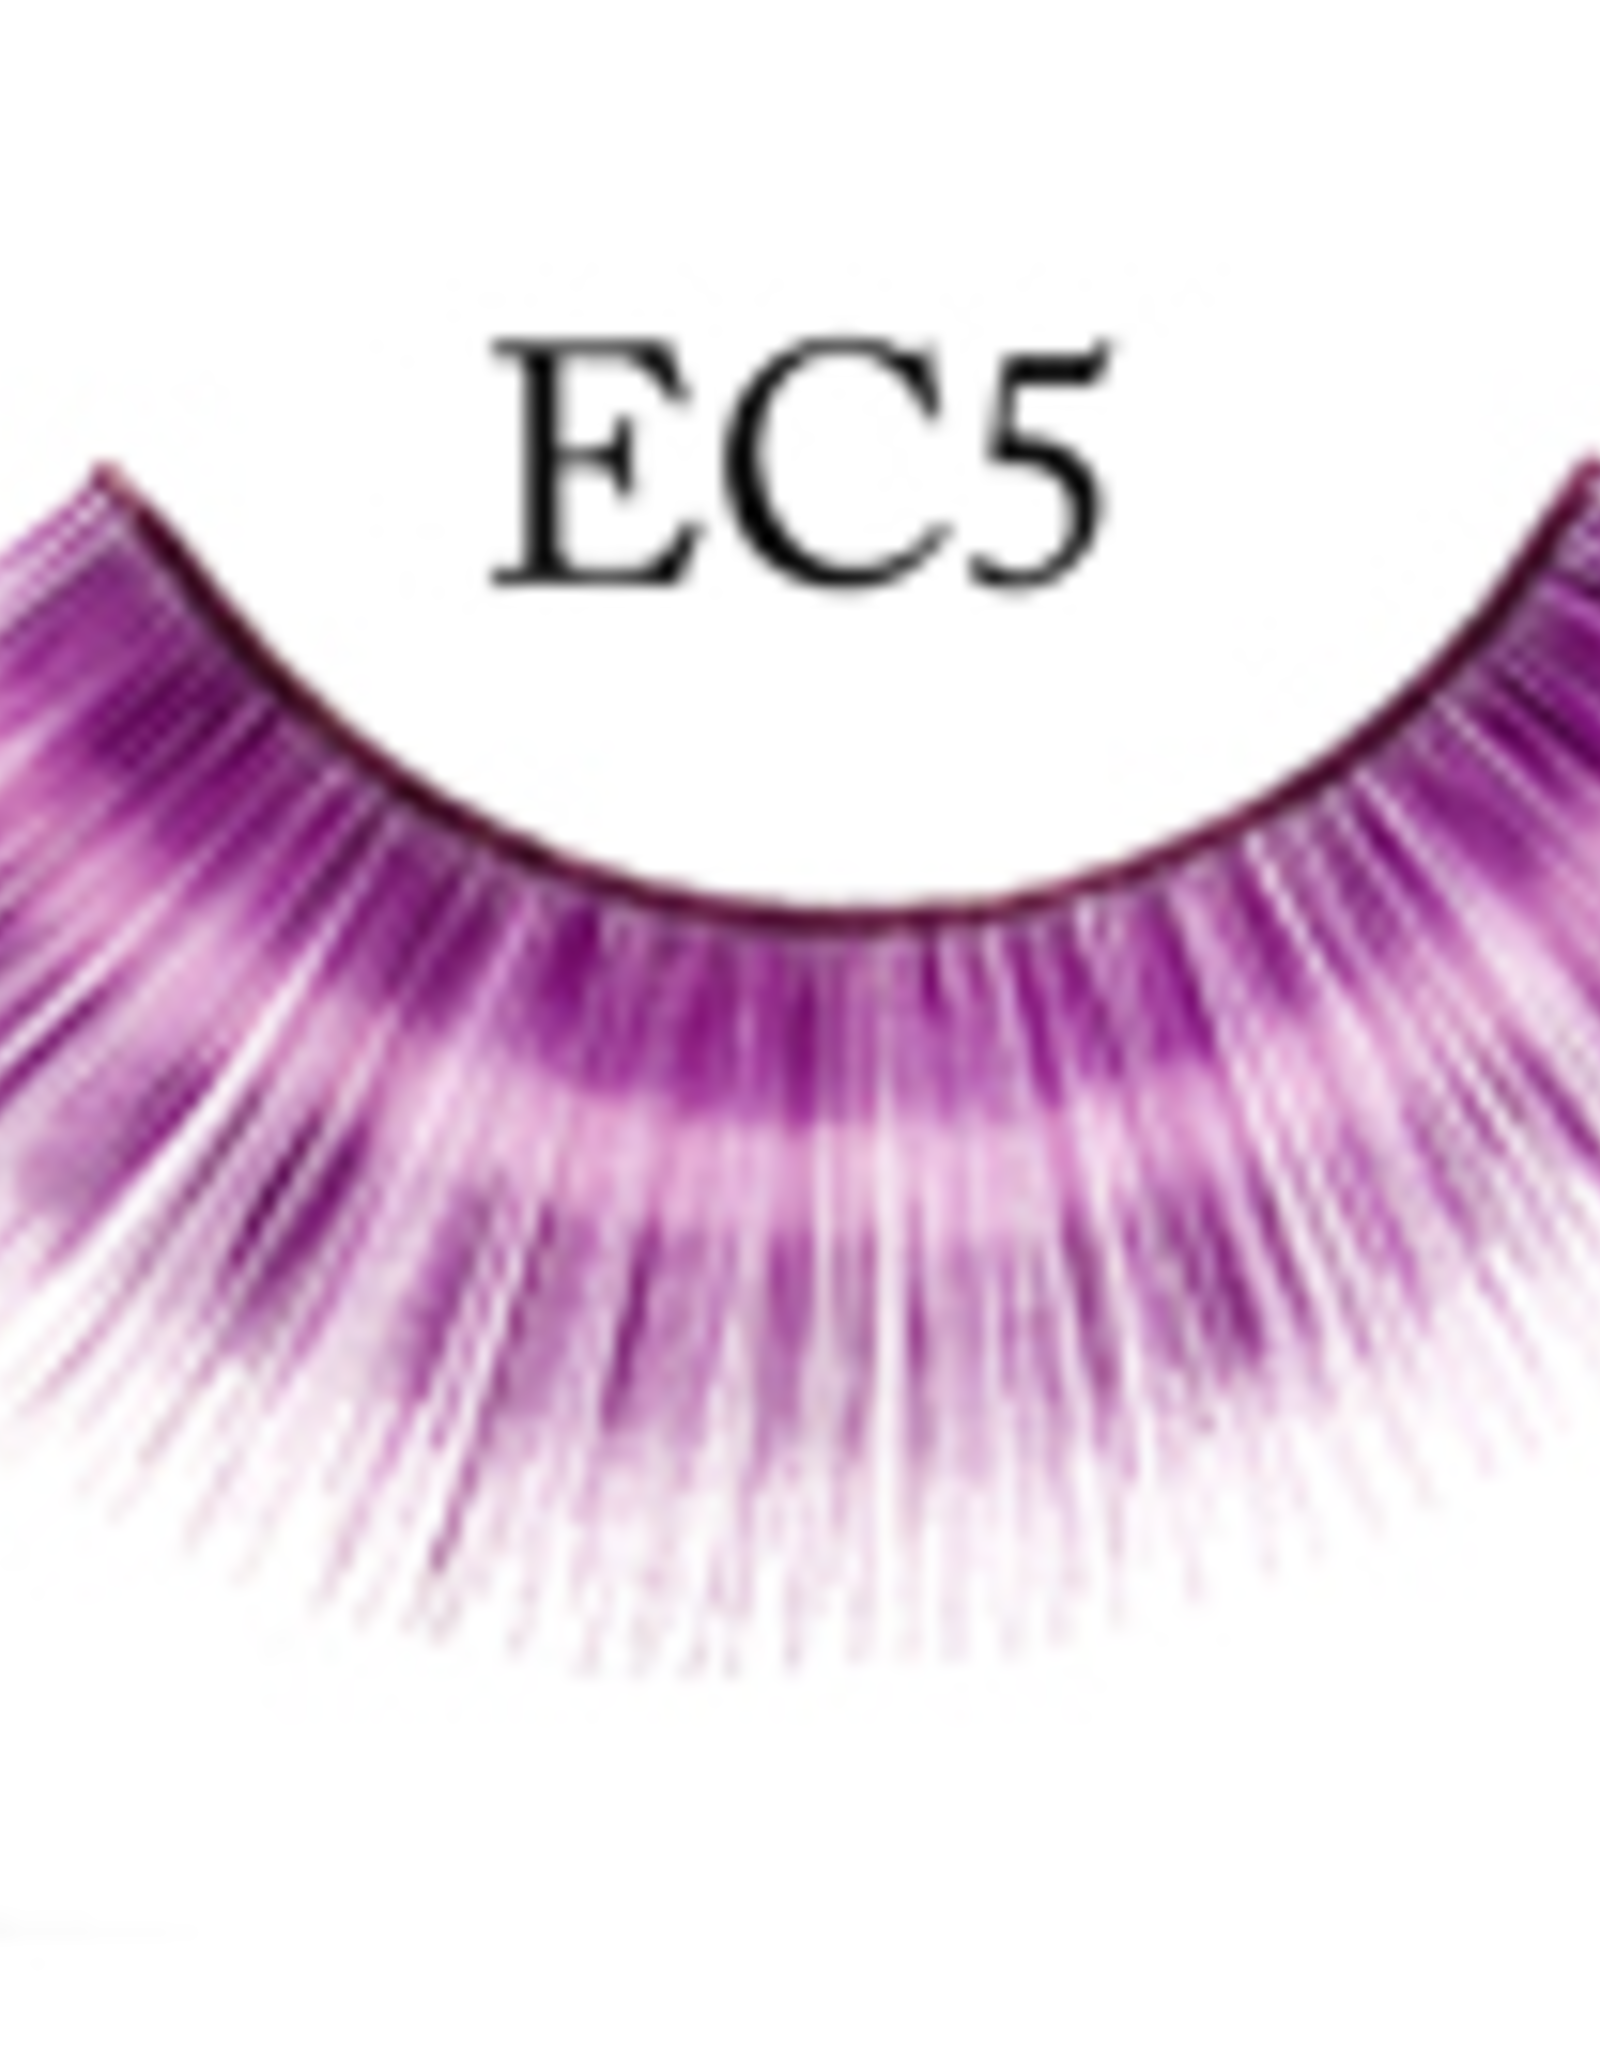 EYELASH-SOLID COLOR, PURPLE